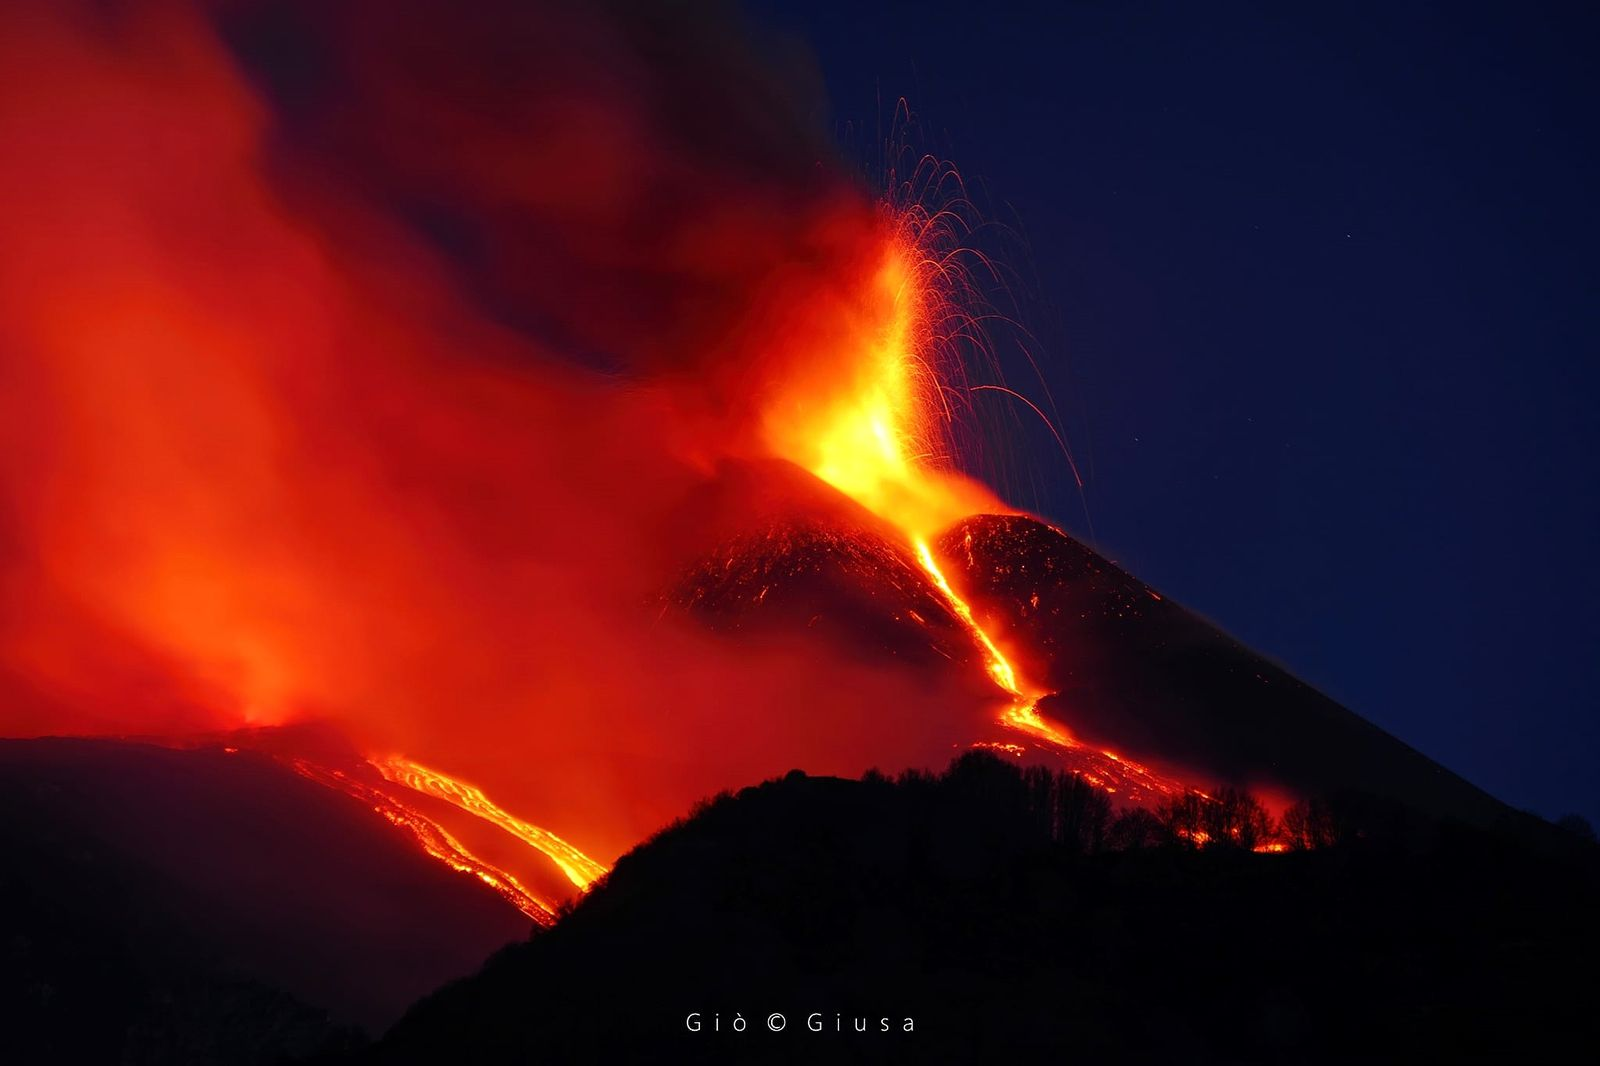 Etna SEC - 17th paroxysm: situation on 01.04.2021 at the blue hour, between darkness and light - lava fountain, and overflow in the Velle del bove; spaterring at the base of the SE, alimentan, t of the lava flows - photo by Gio Giusa